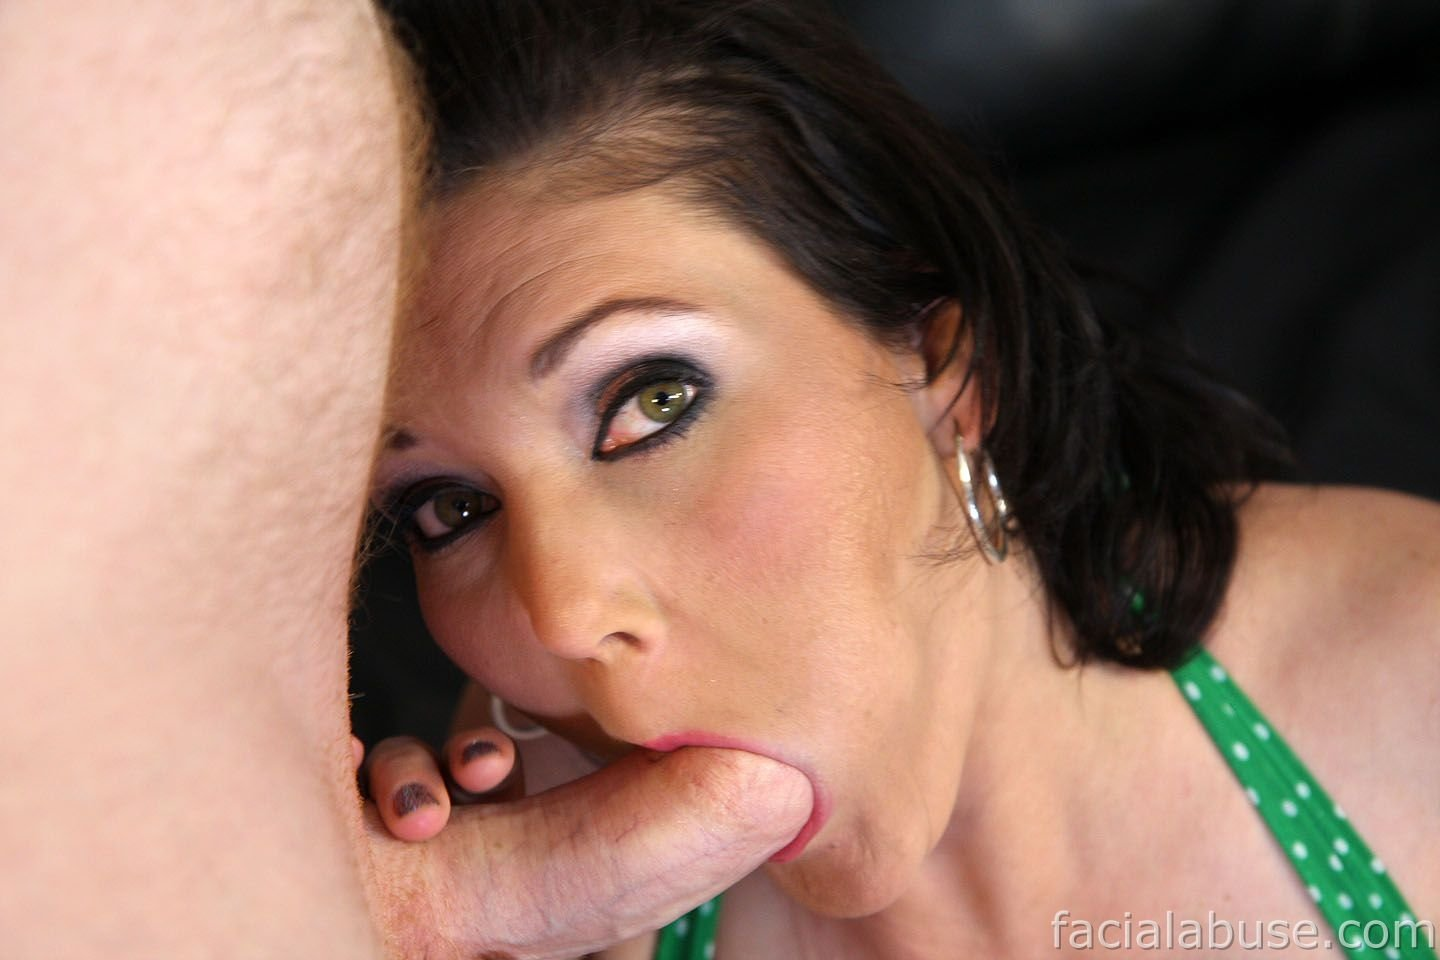 Capri Cavalli taking on a deep throat with sperm going there